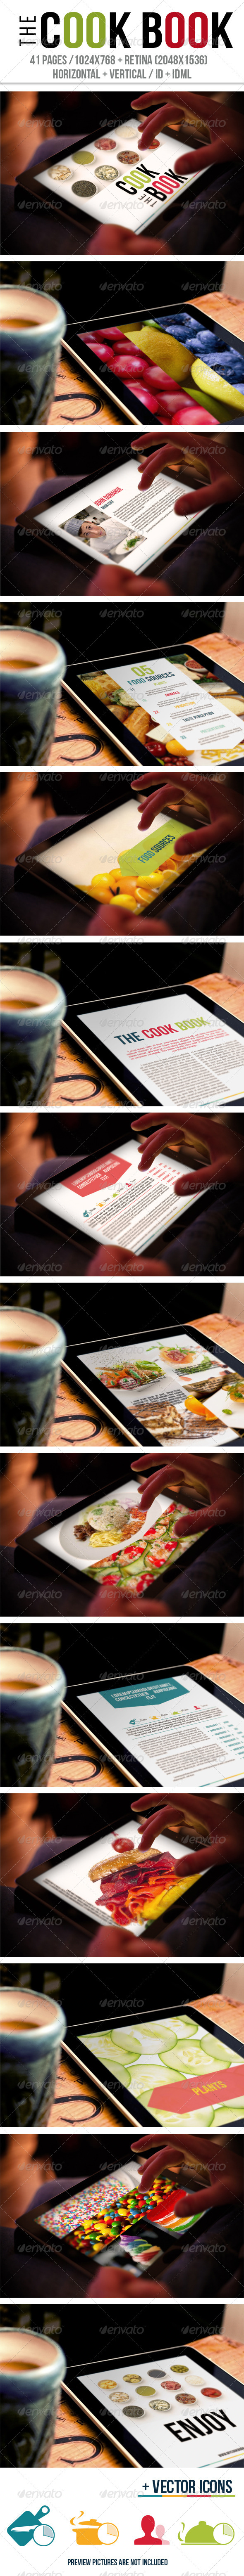 GraphicRiver The Cook Book Tablet 6445104